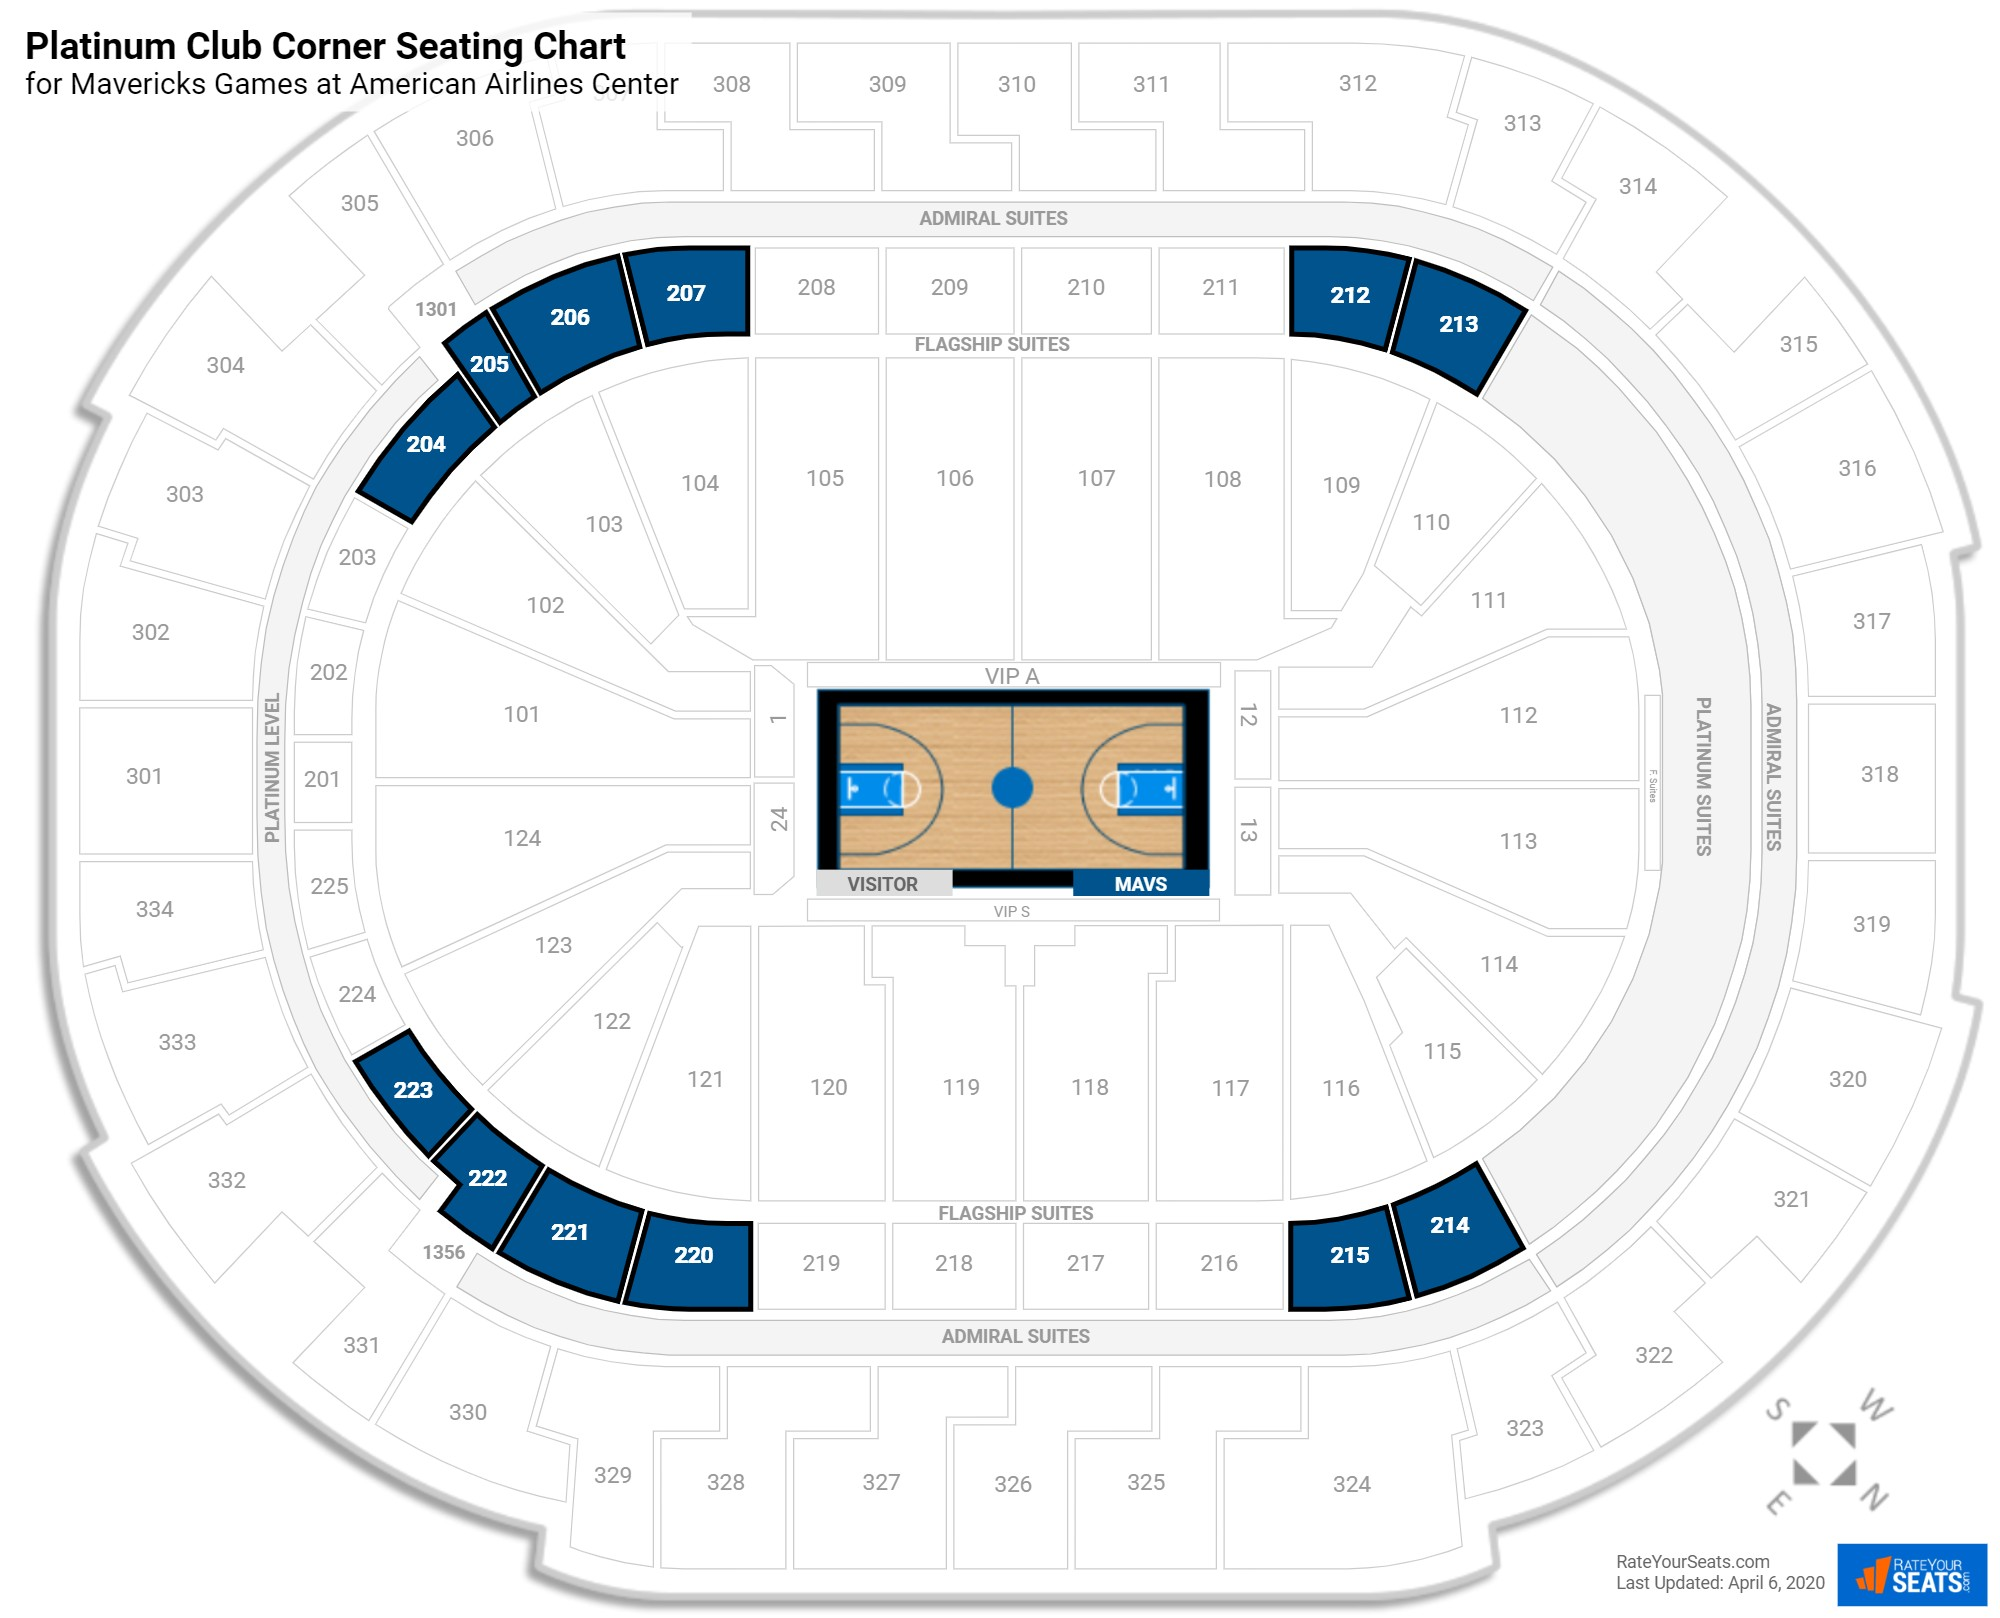 American Airlines Center Platinum Club Corner seating chart